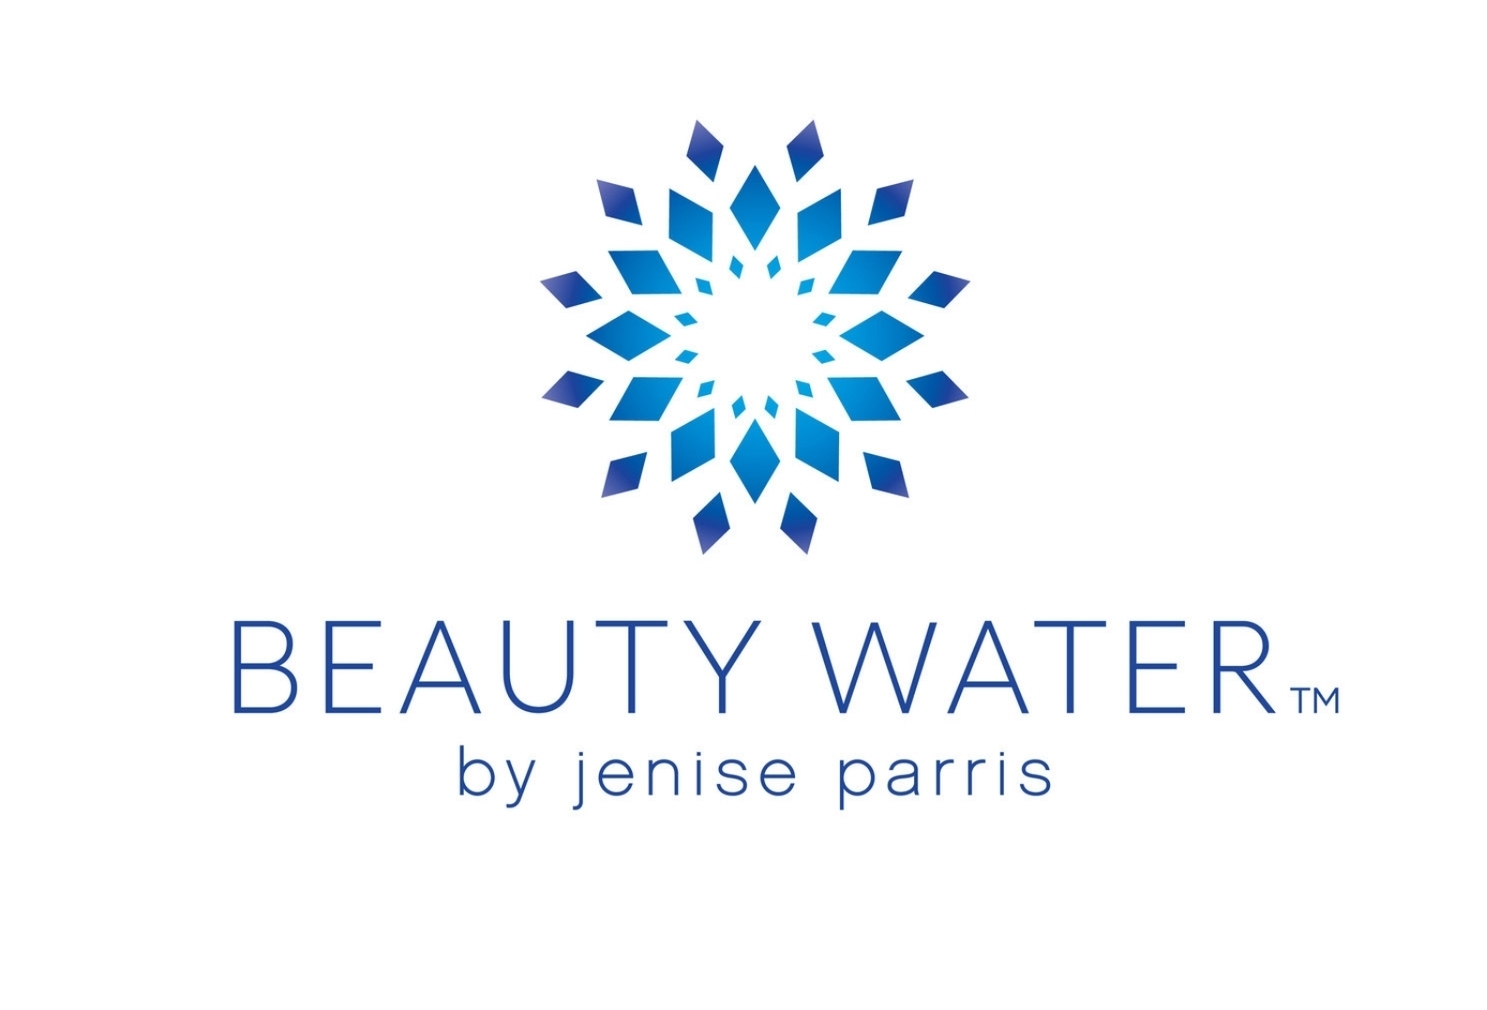 Beauty Water by Jenise Parris